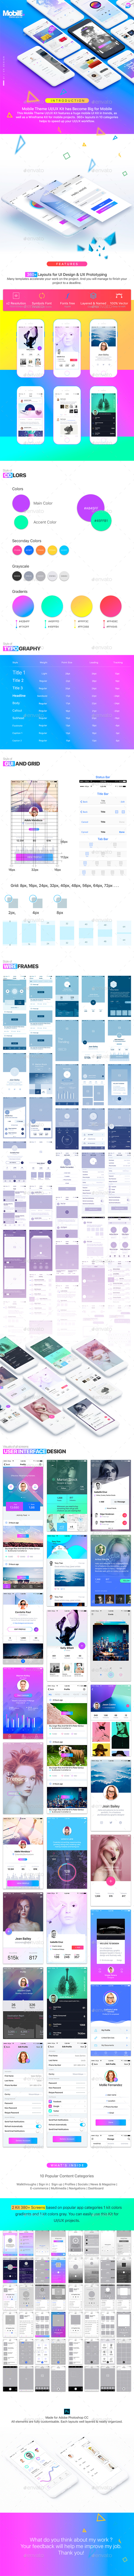 Kavi Admin Dashboard Template (User Interfaces)